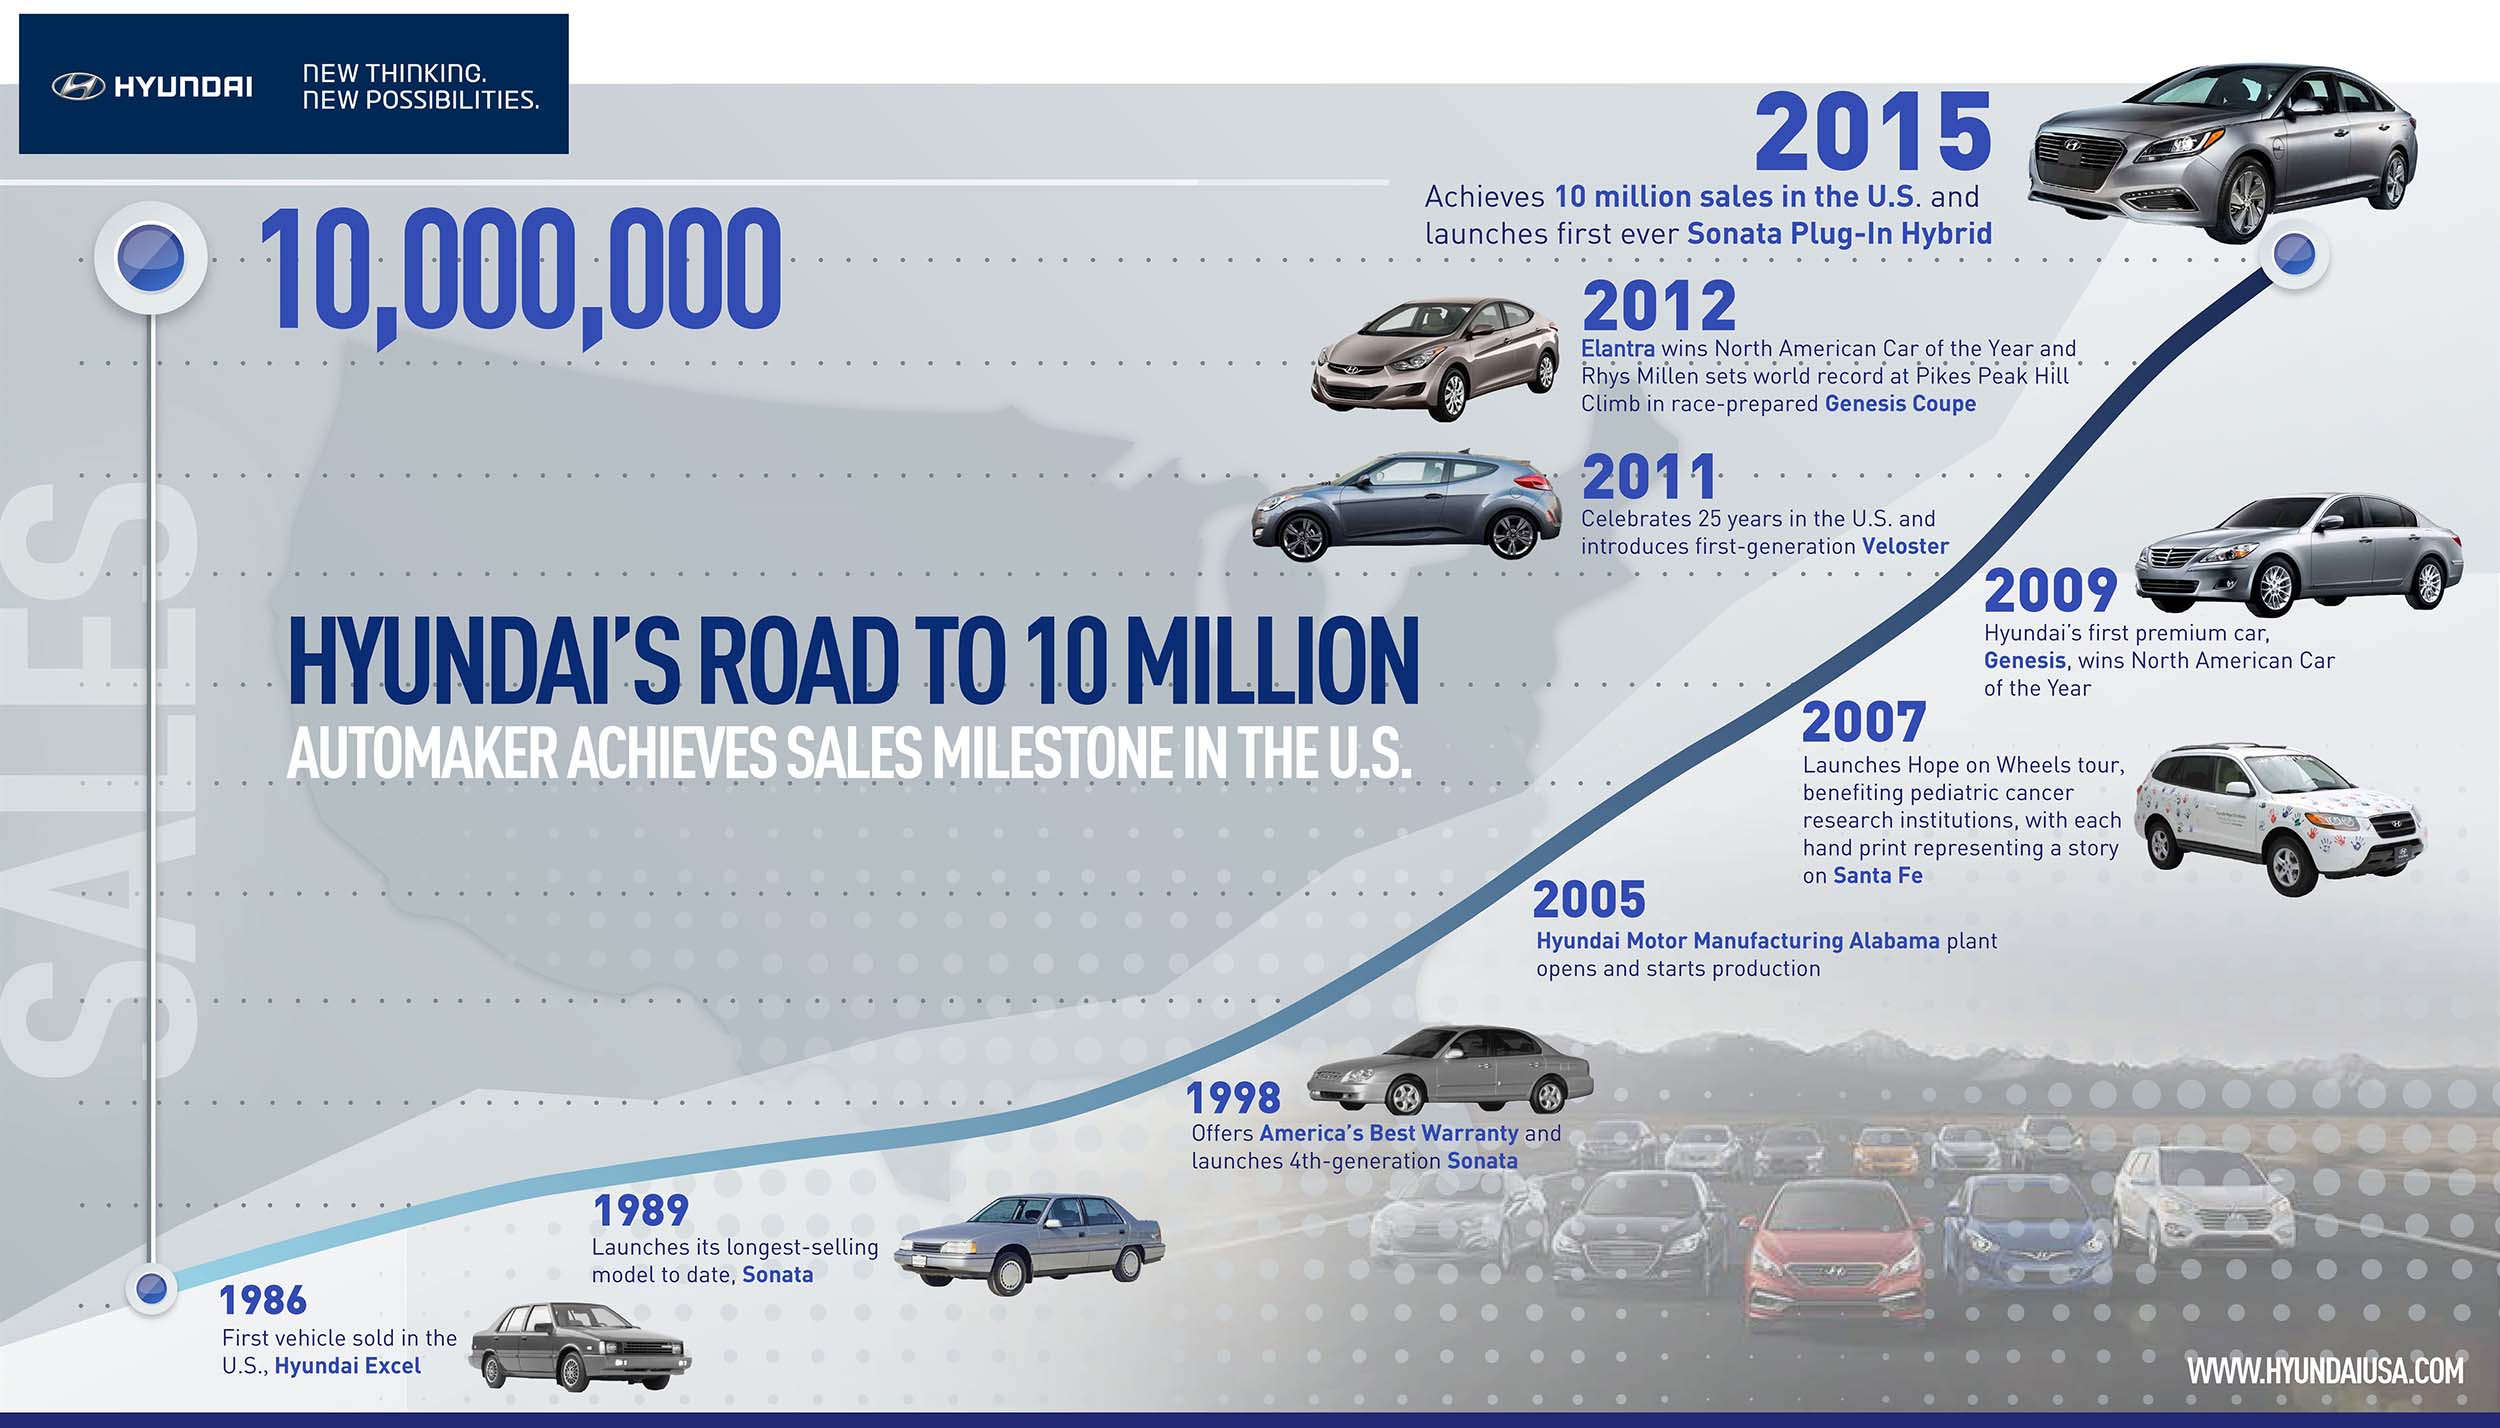 Hyundai hits milestone with 10 million cars sold in US - Autoblog